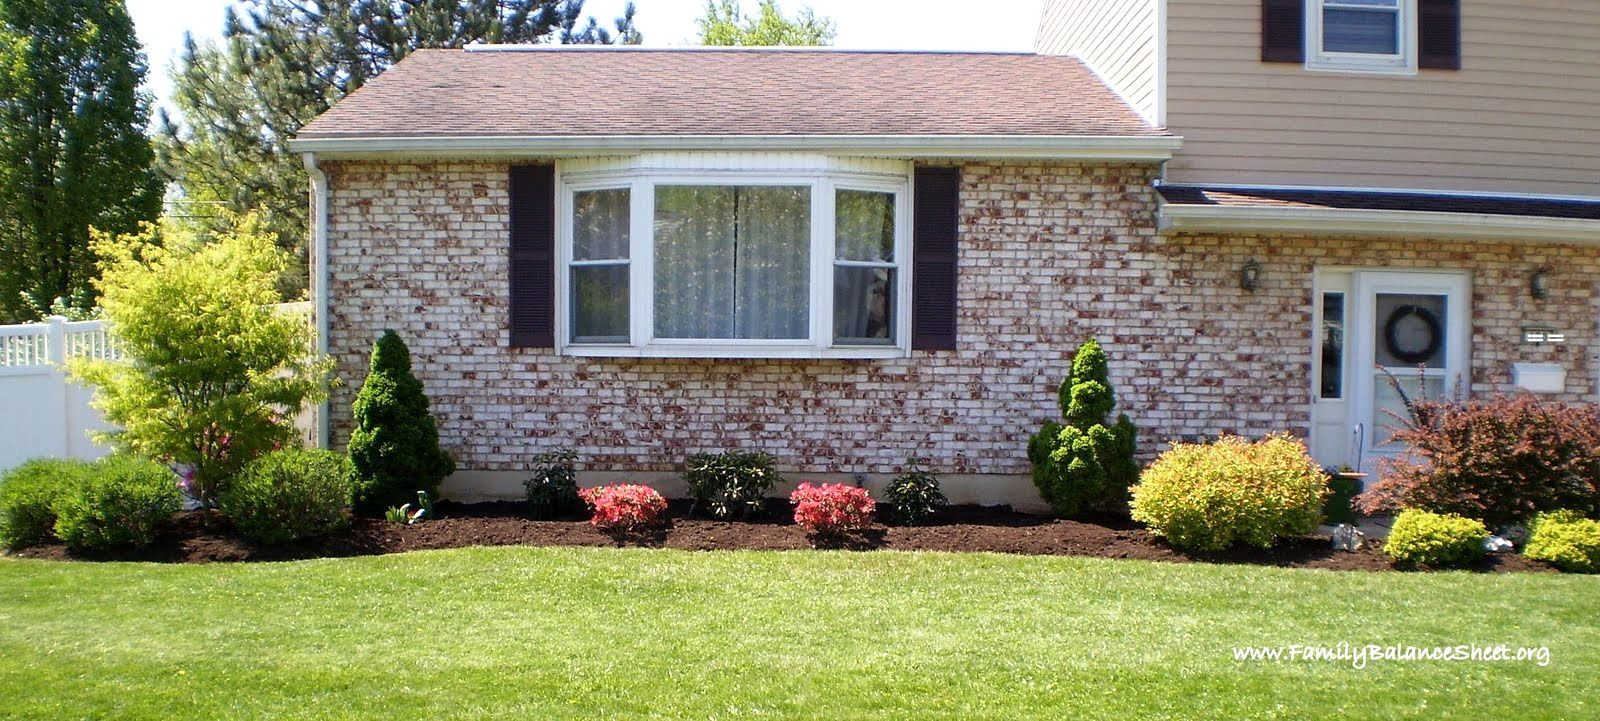 Landscaping ideas front yard ranch style home front yard for Tiny front yard landscaping